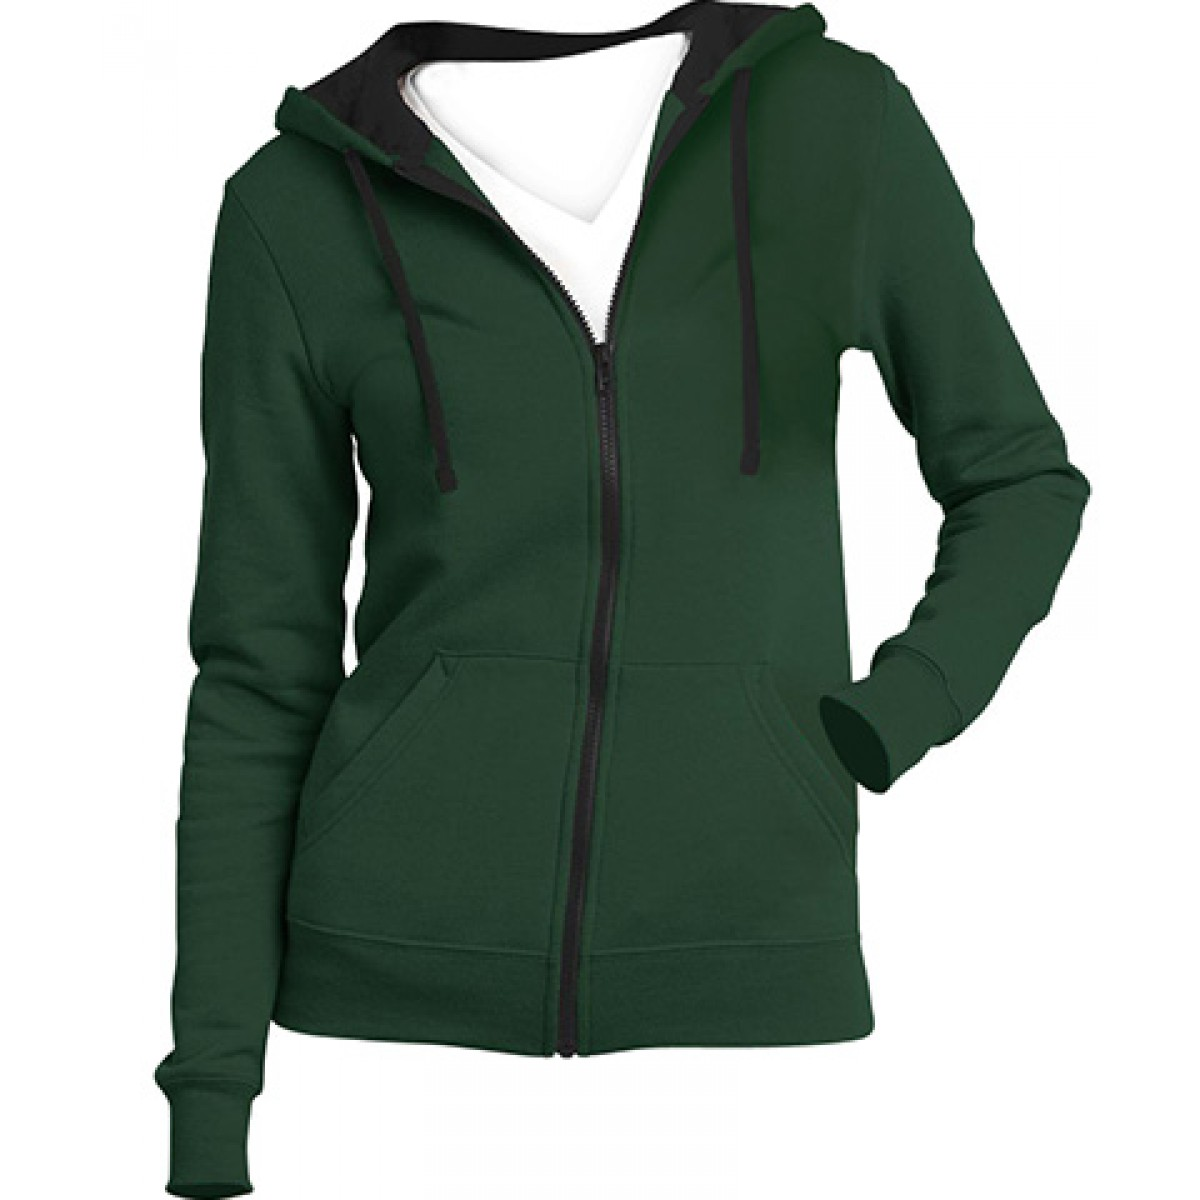 Juniors Full-Zip Hoodie-Green-3XL